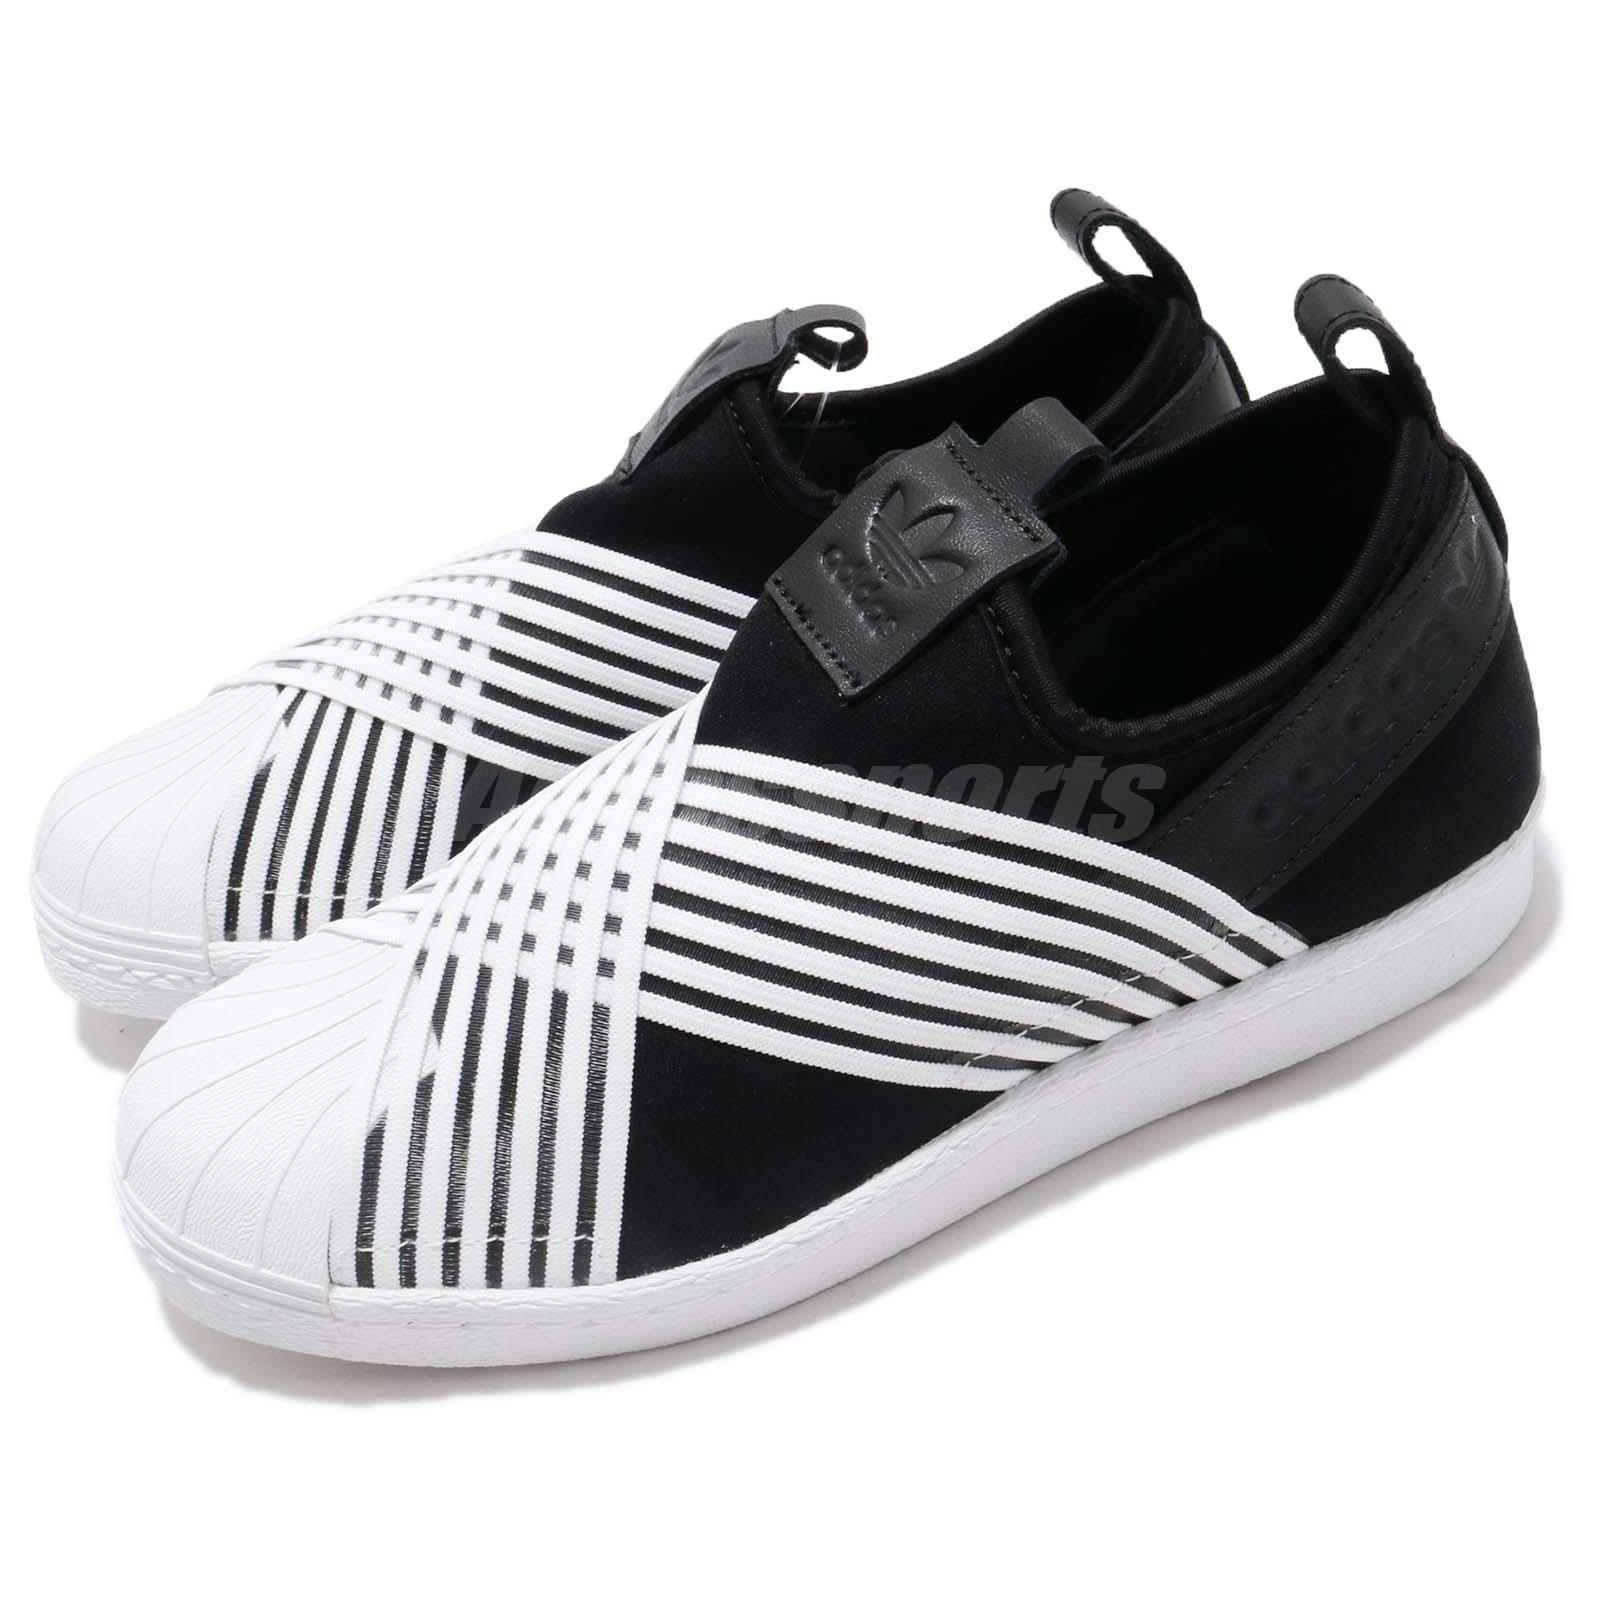 timeless design 247da 9e98e Details about adidas Originals Superstar Slip On W Black White Women Slip  On Shoes D96703